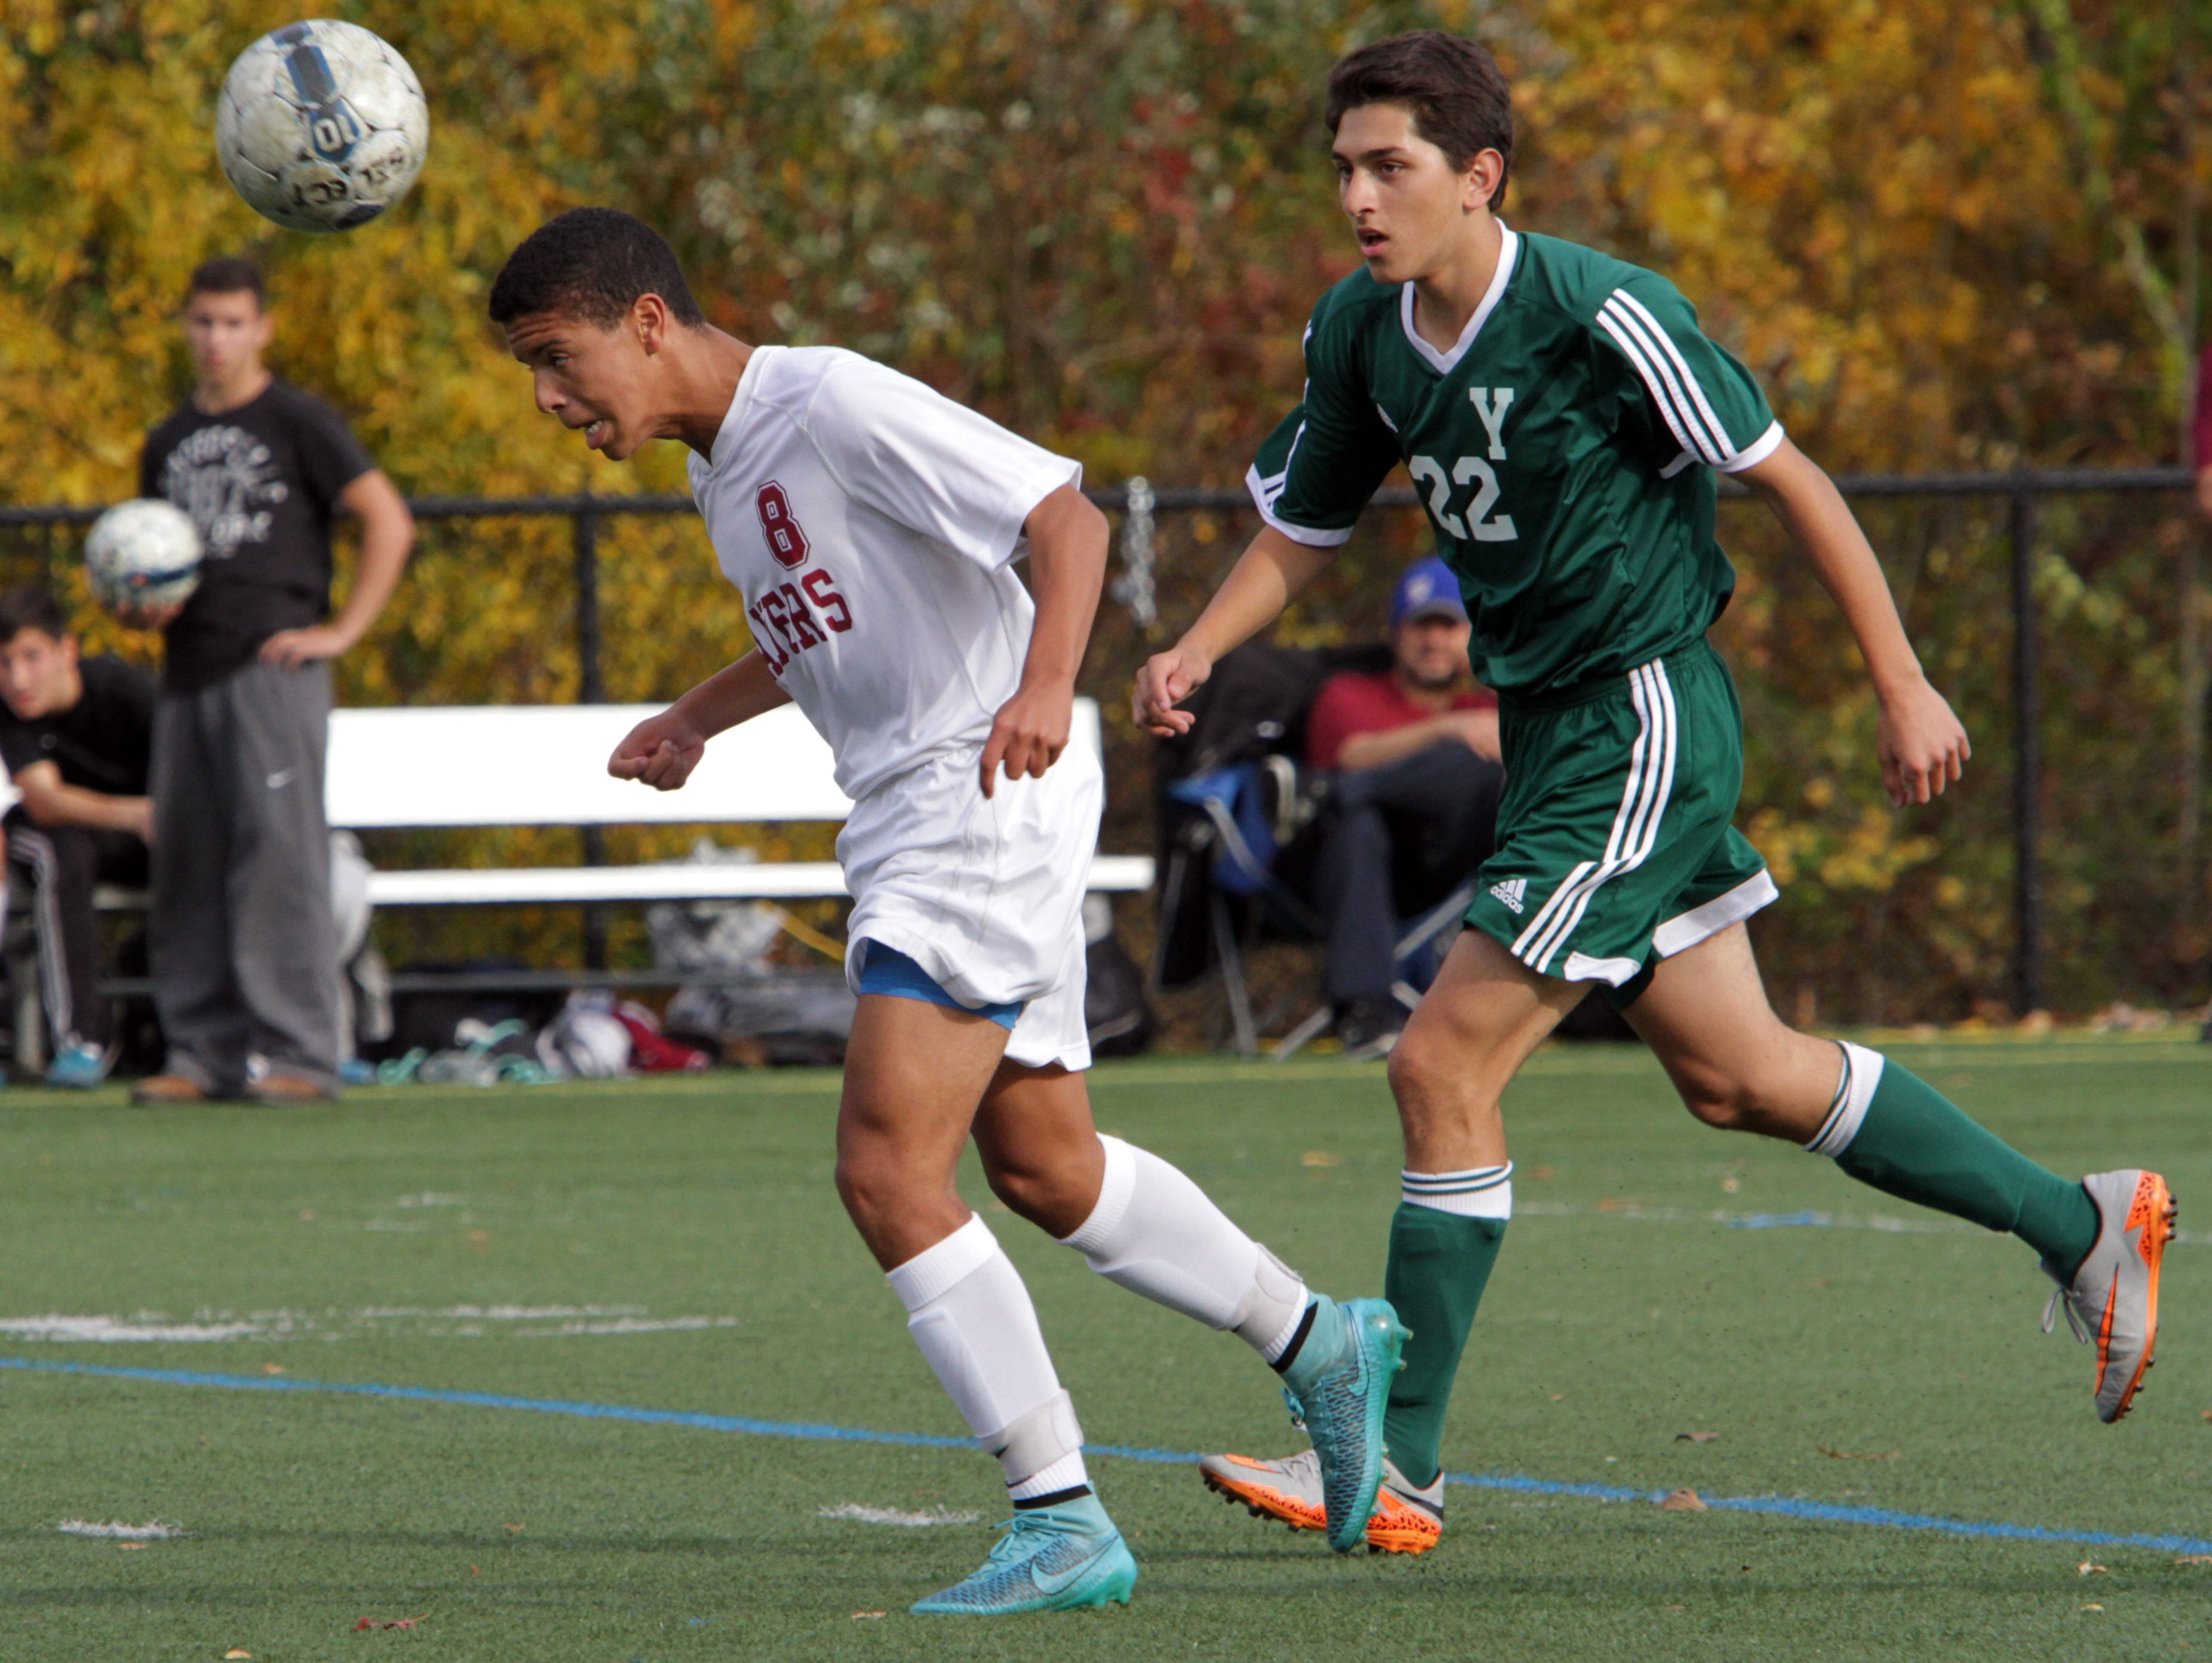 Chris Gaujean of Scarsdale heads the ball away from Ankit Patel of Yorktown during their Class AA boys soccer semifinal at Purchase College Oct. 29, 2105.